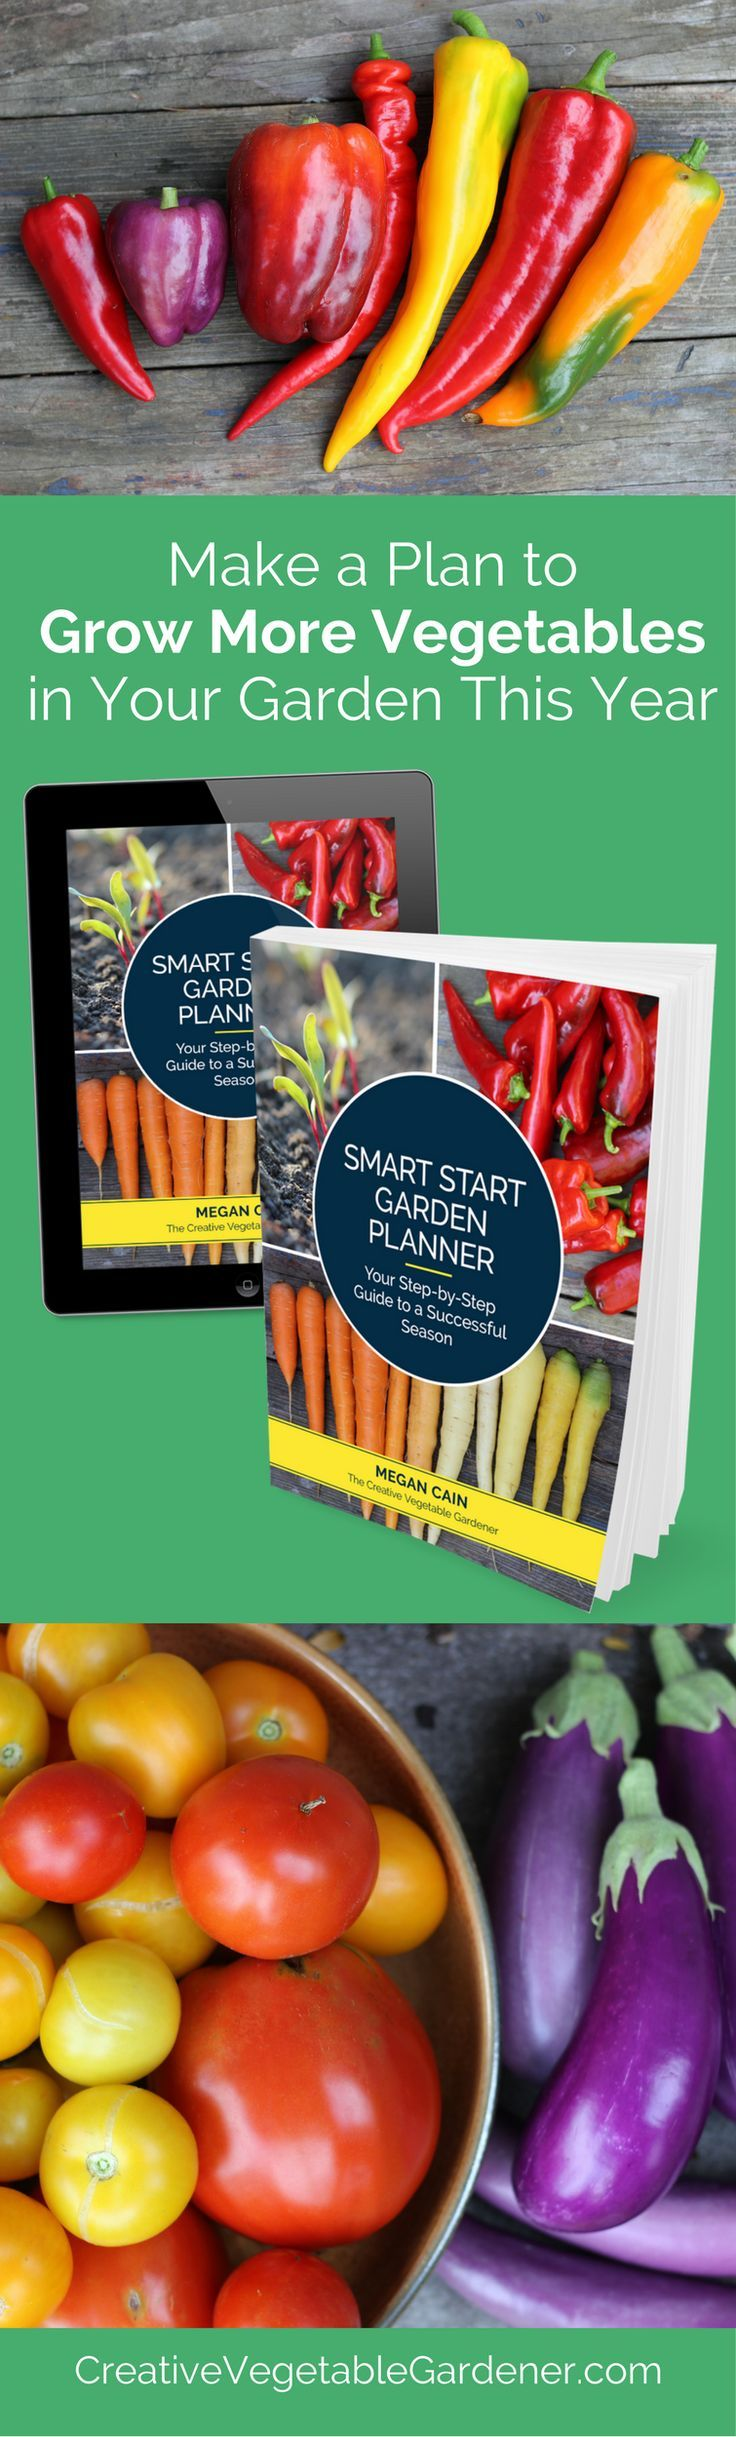 Create an easy and simple plan to get more from your garden this year.